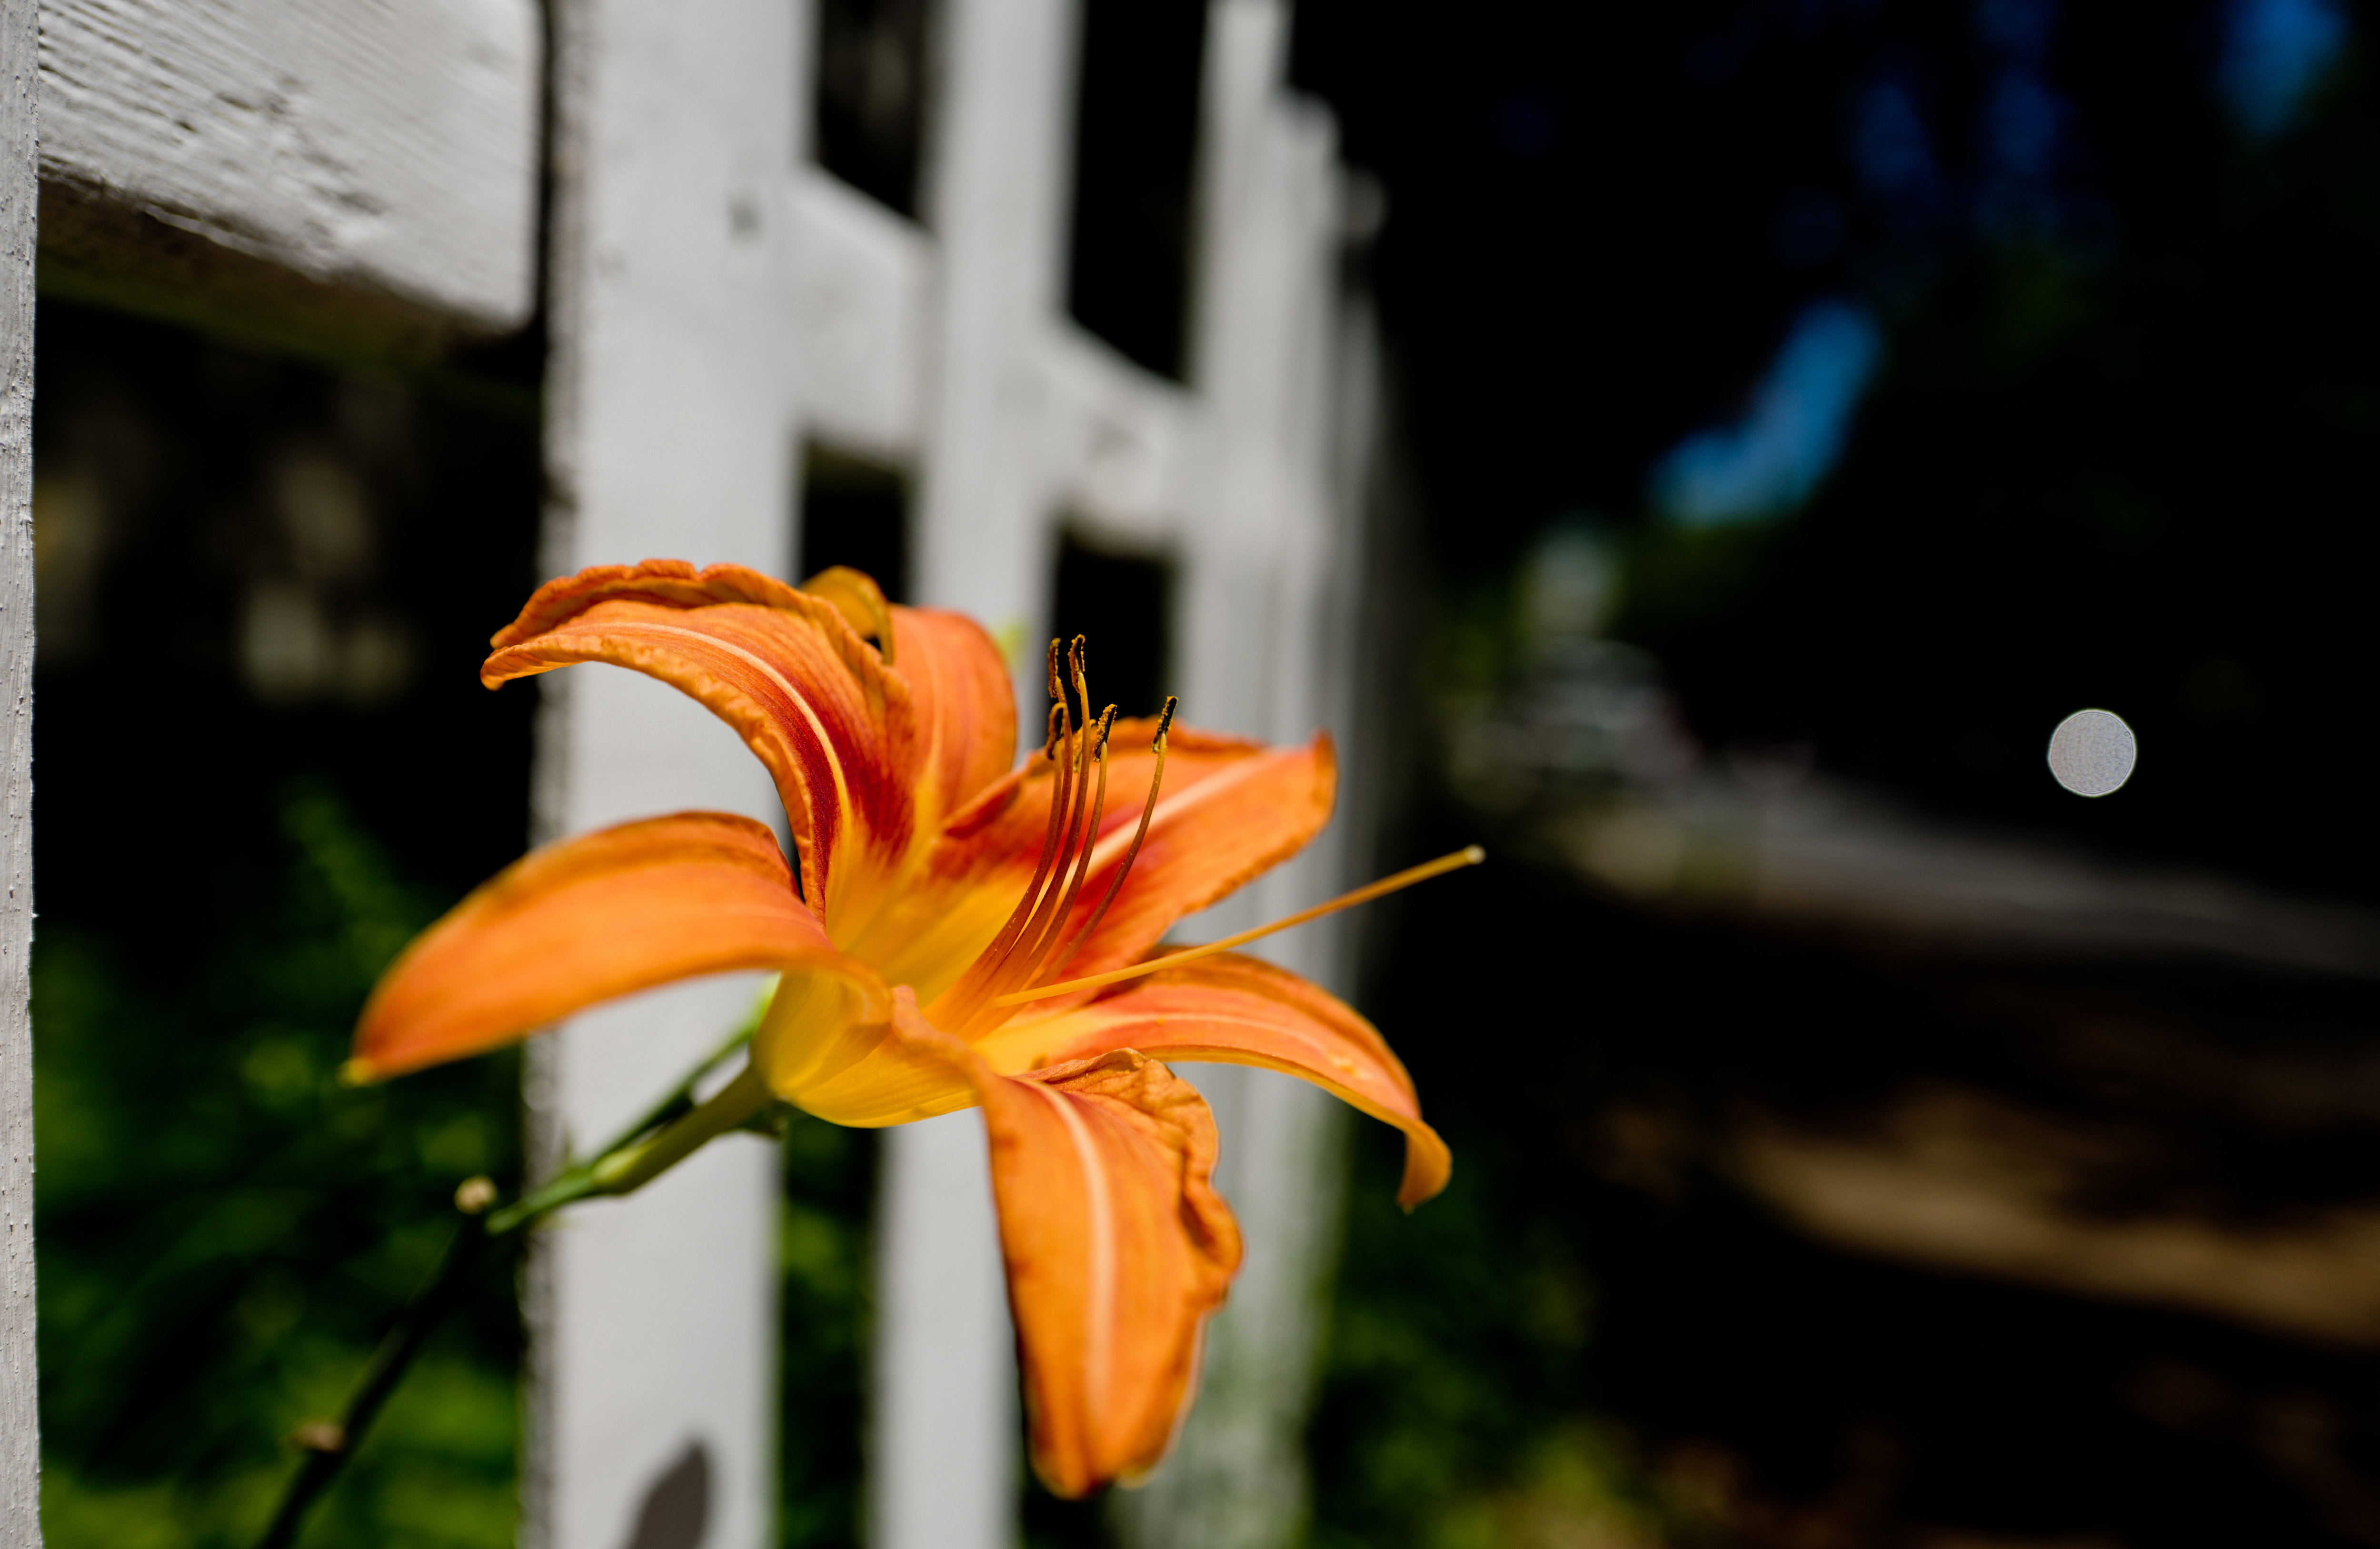 A photo of a daylily taken by the Leica Q (Type 116).